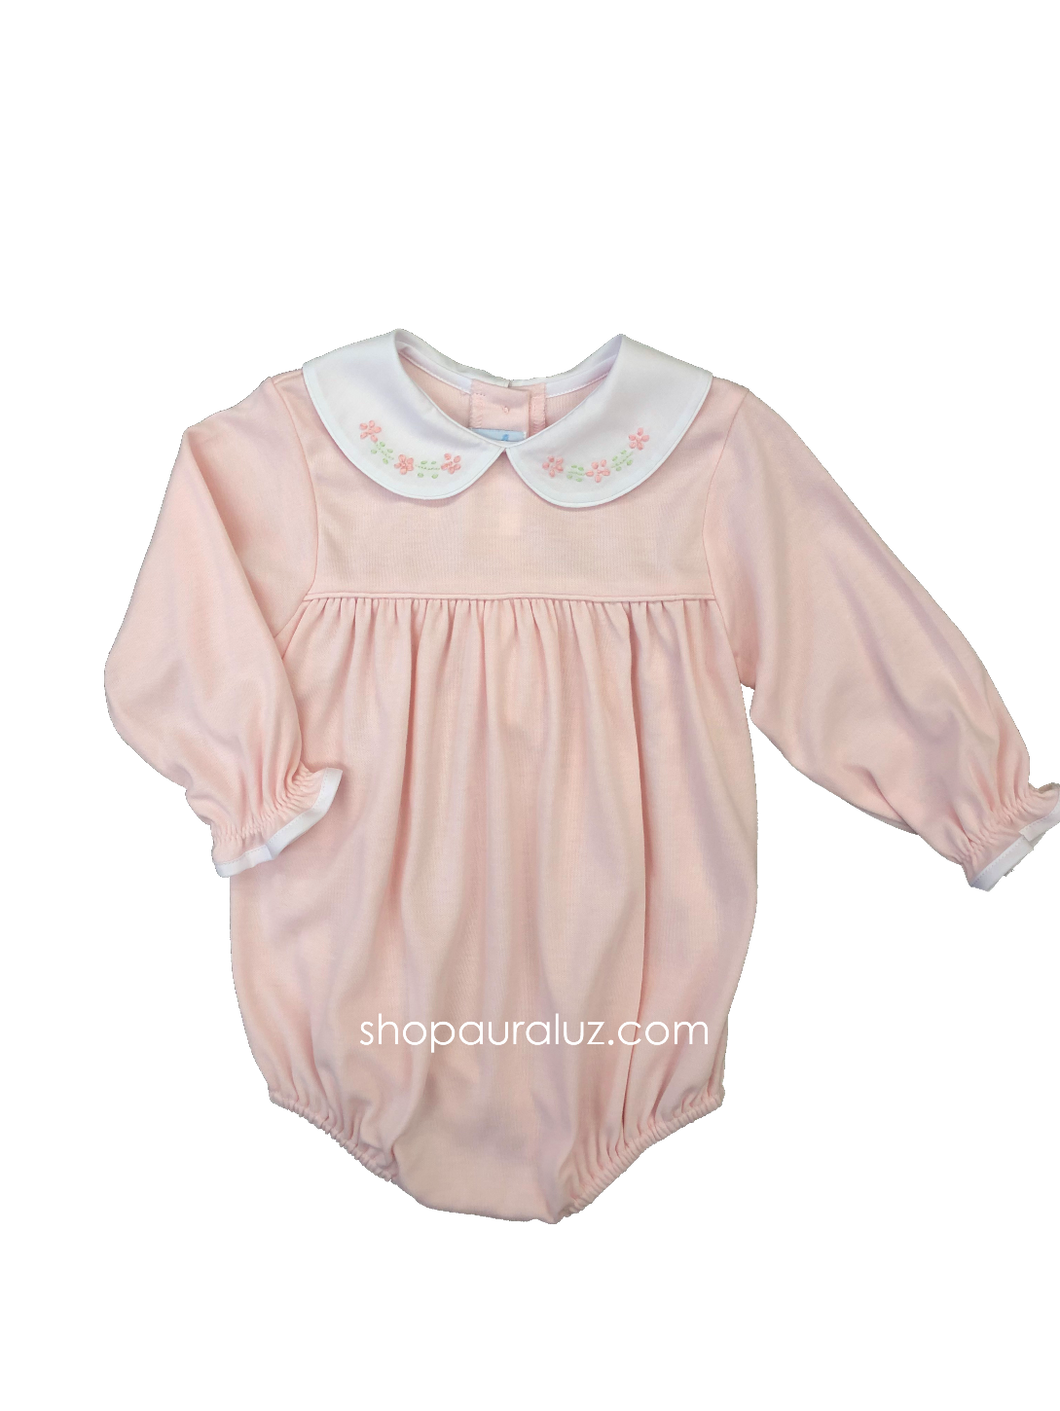 Auraluz Knit Bubble l/s...Pink with p.p.collar and embroidered bow